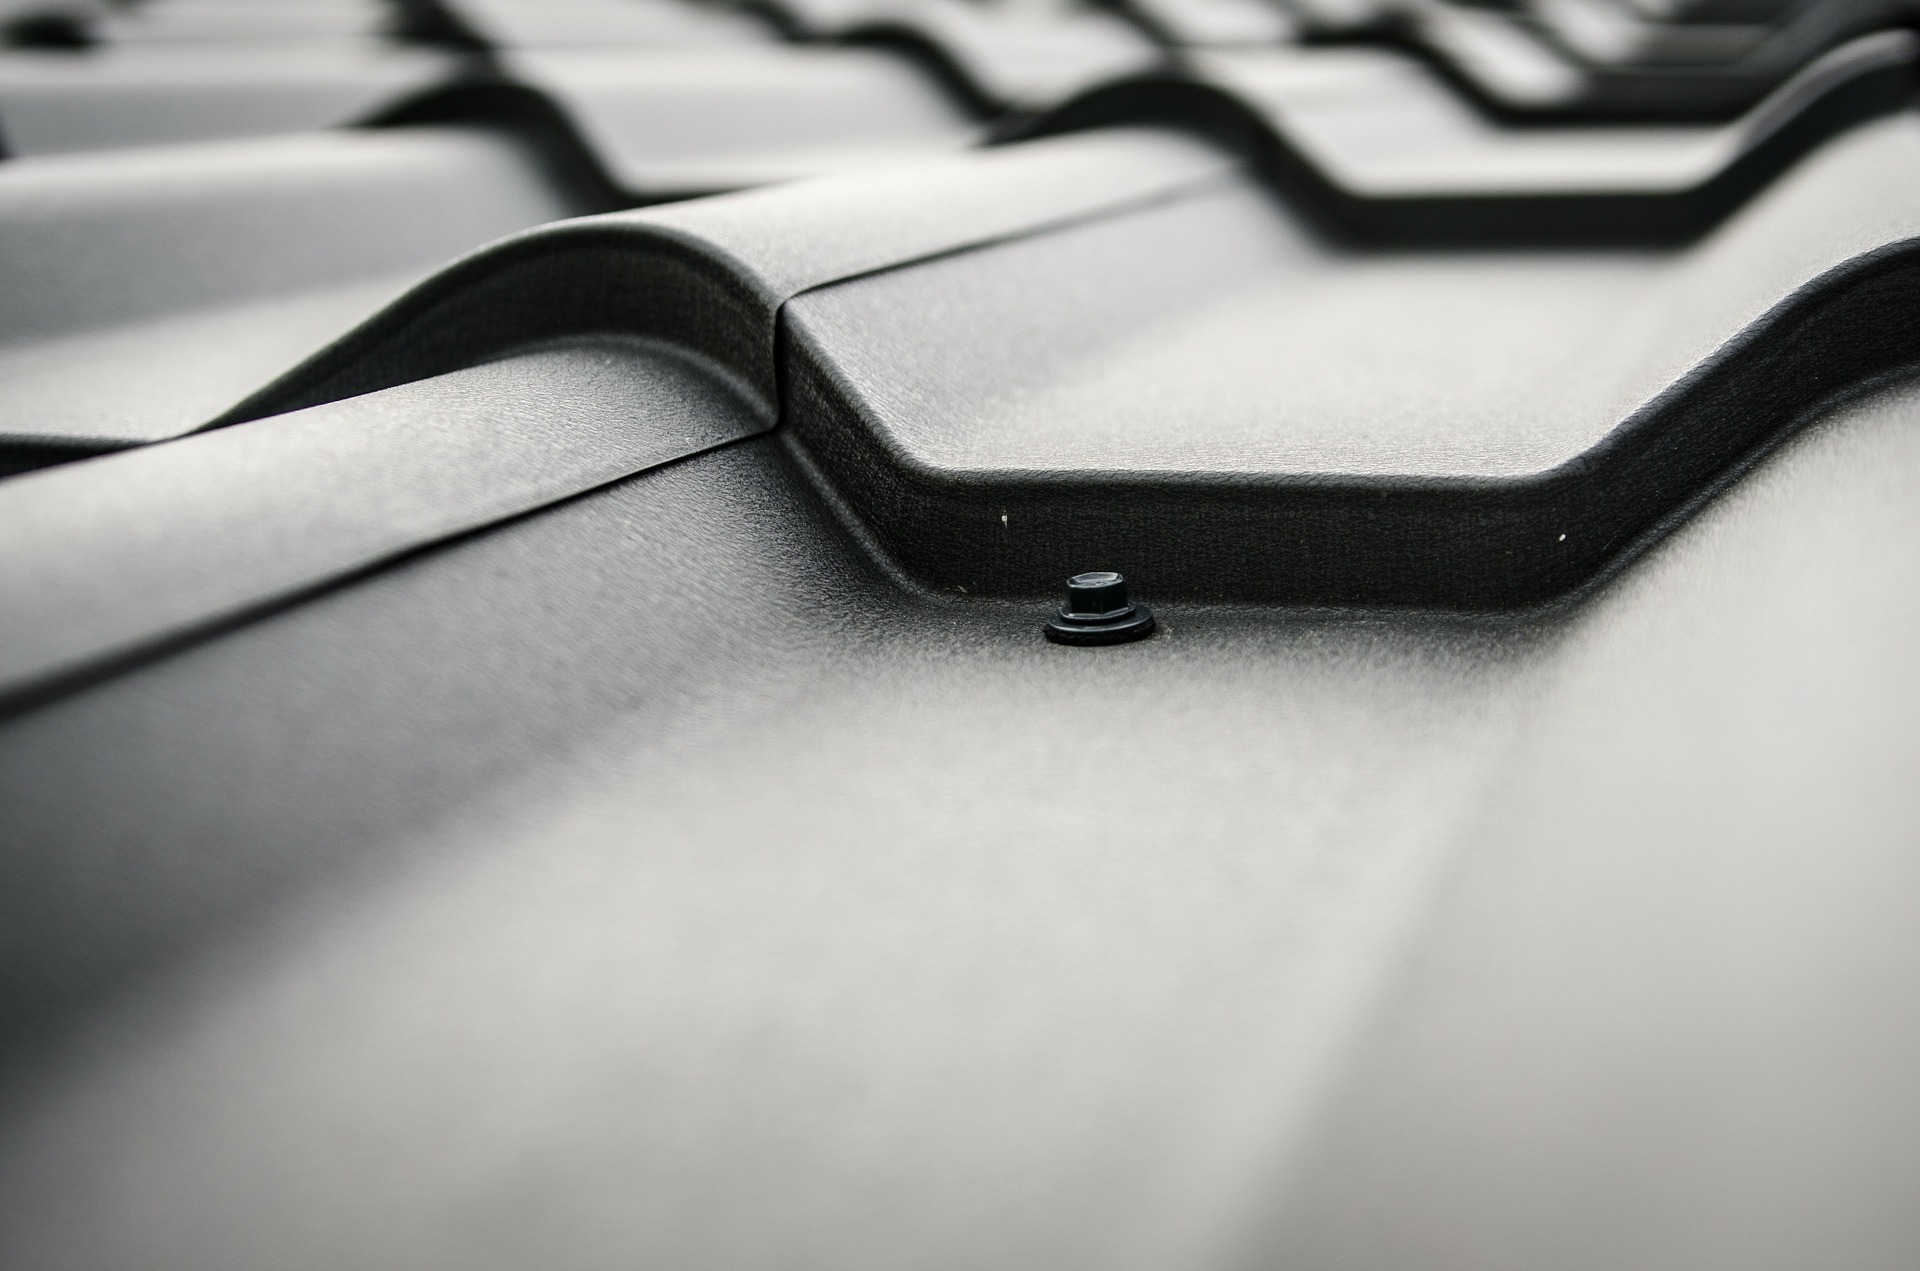 Make sure to check your roof as part of your winter home maintenance.